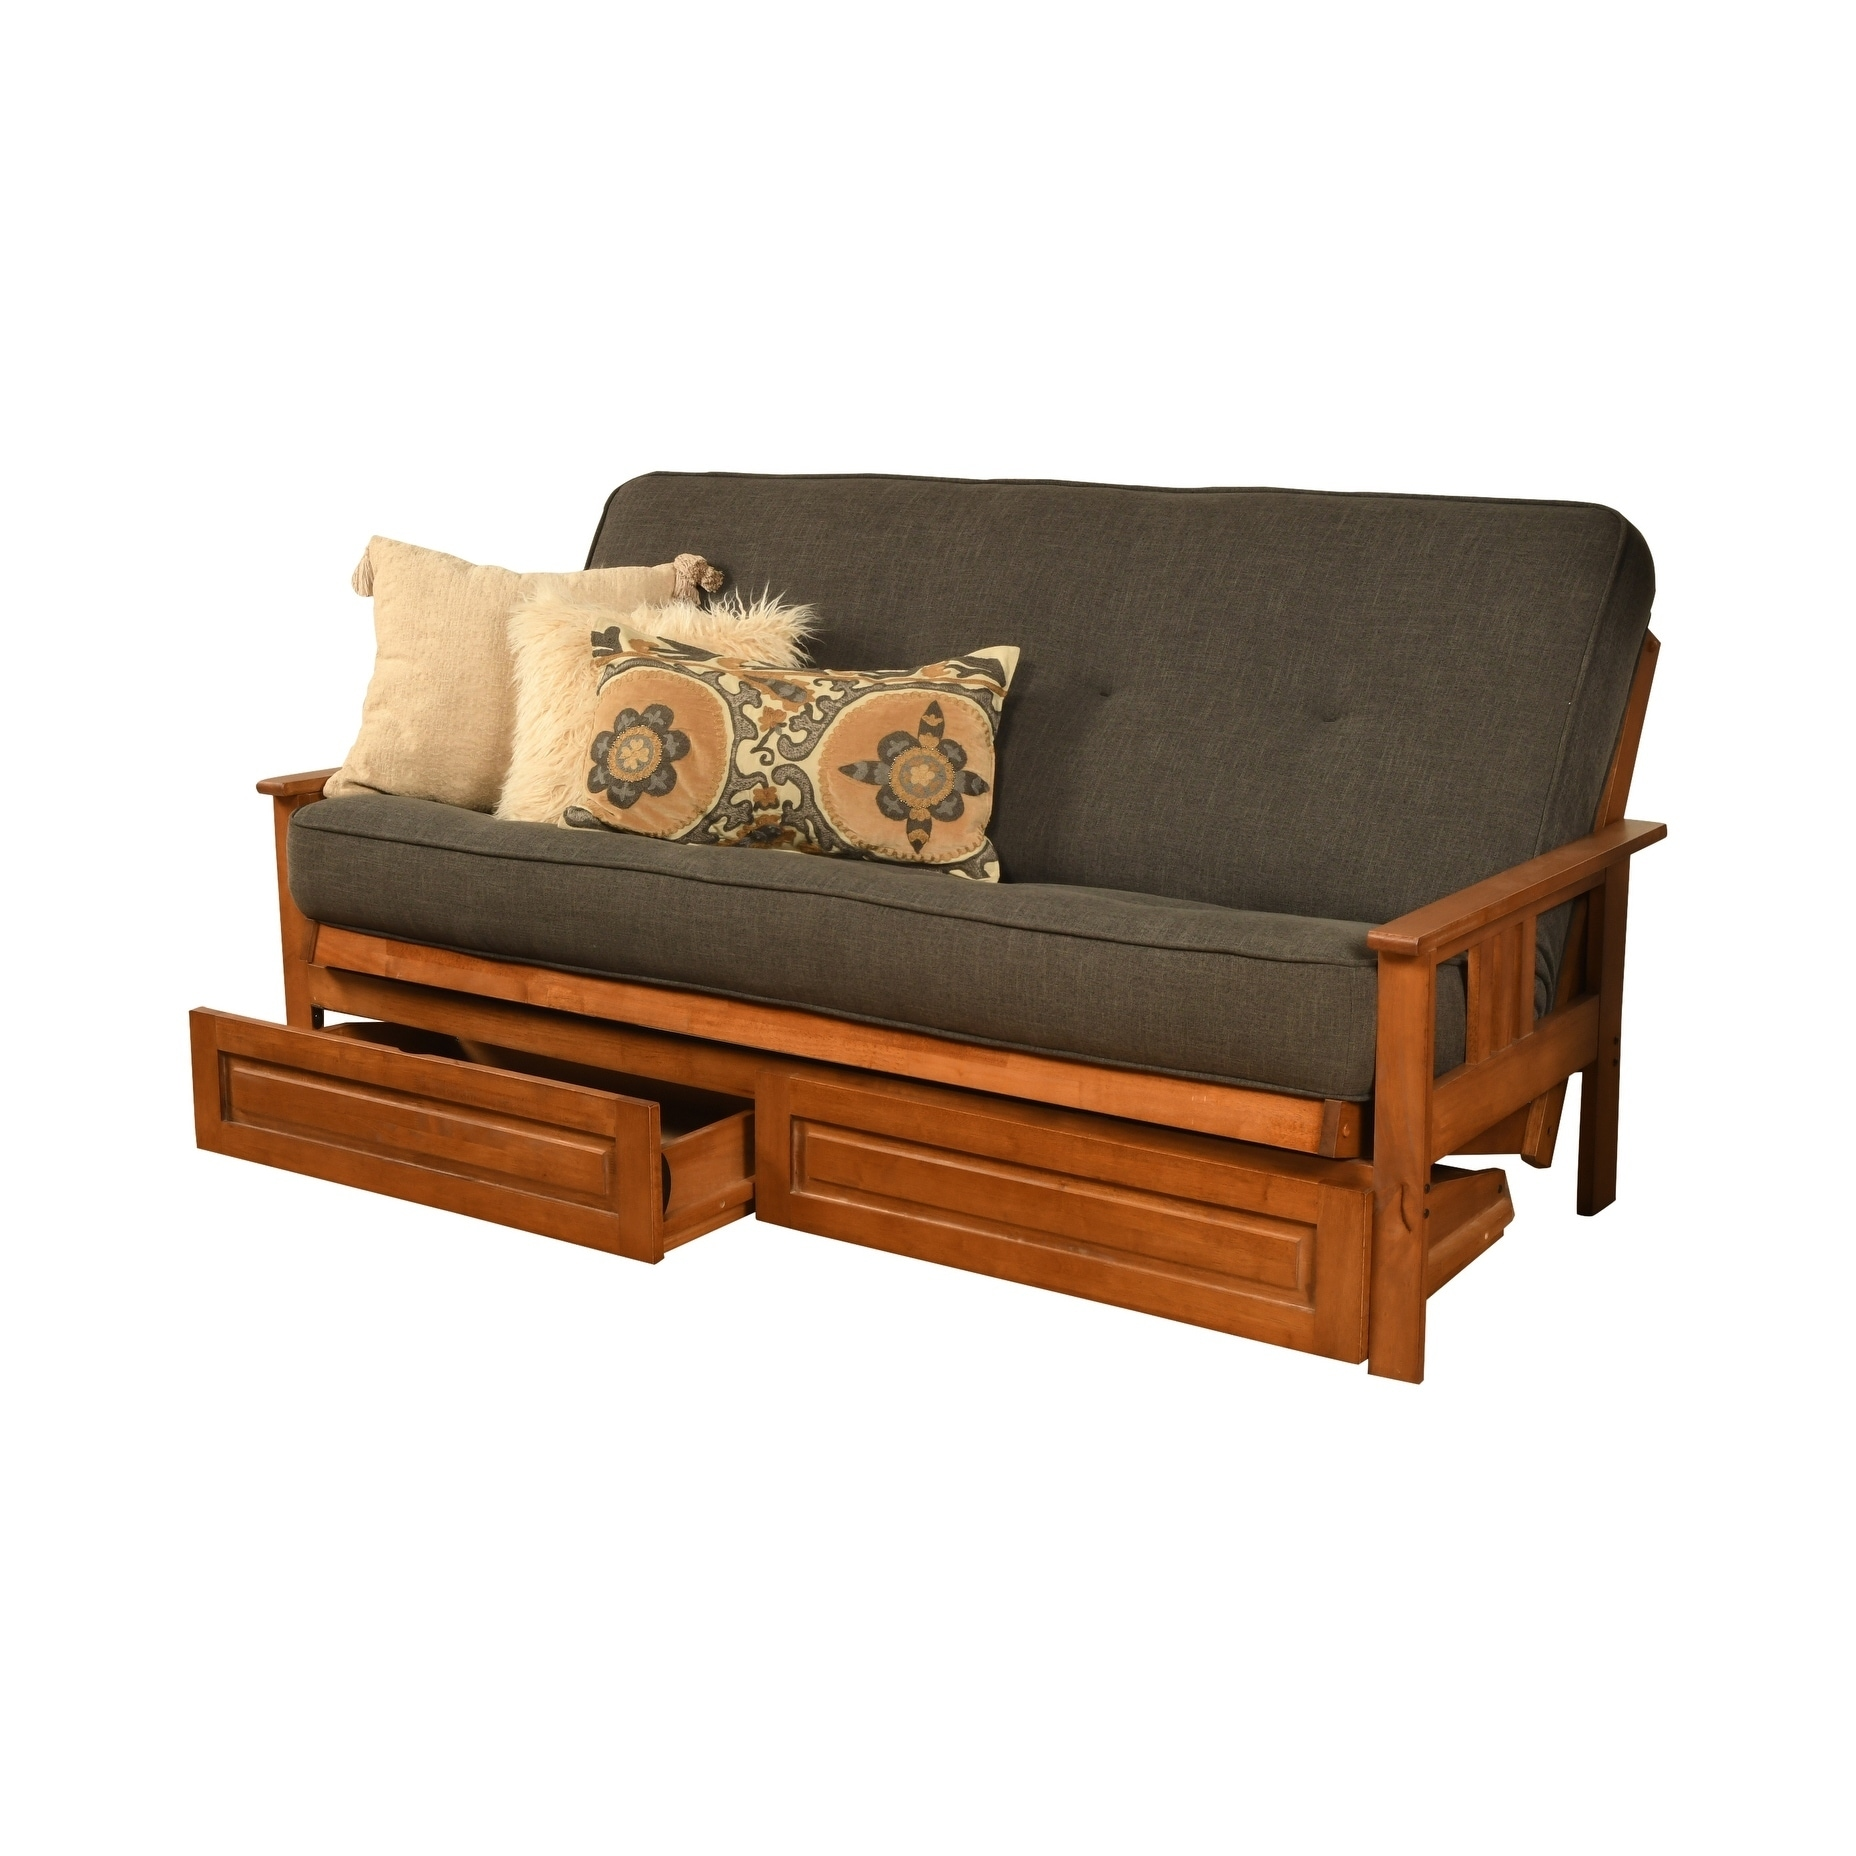 Simmons Futons Vancouver Futon And